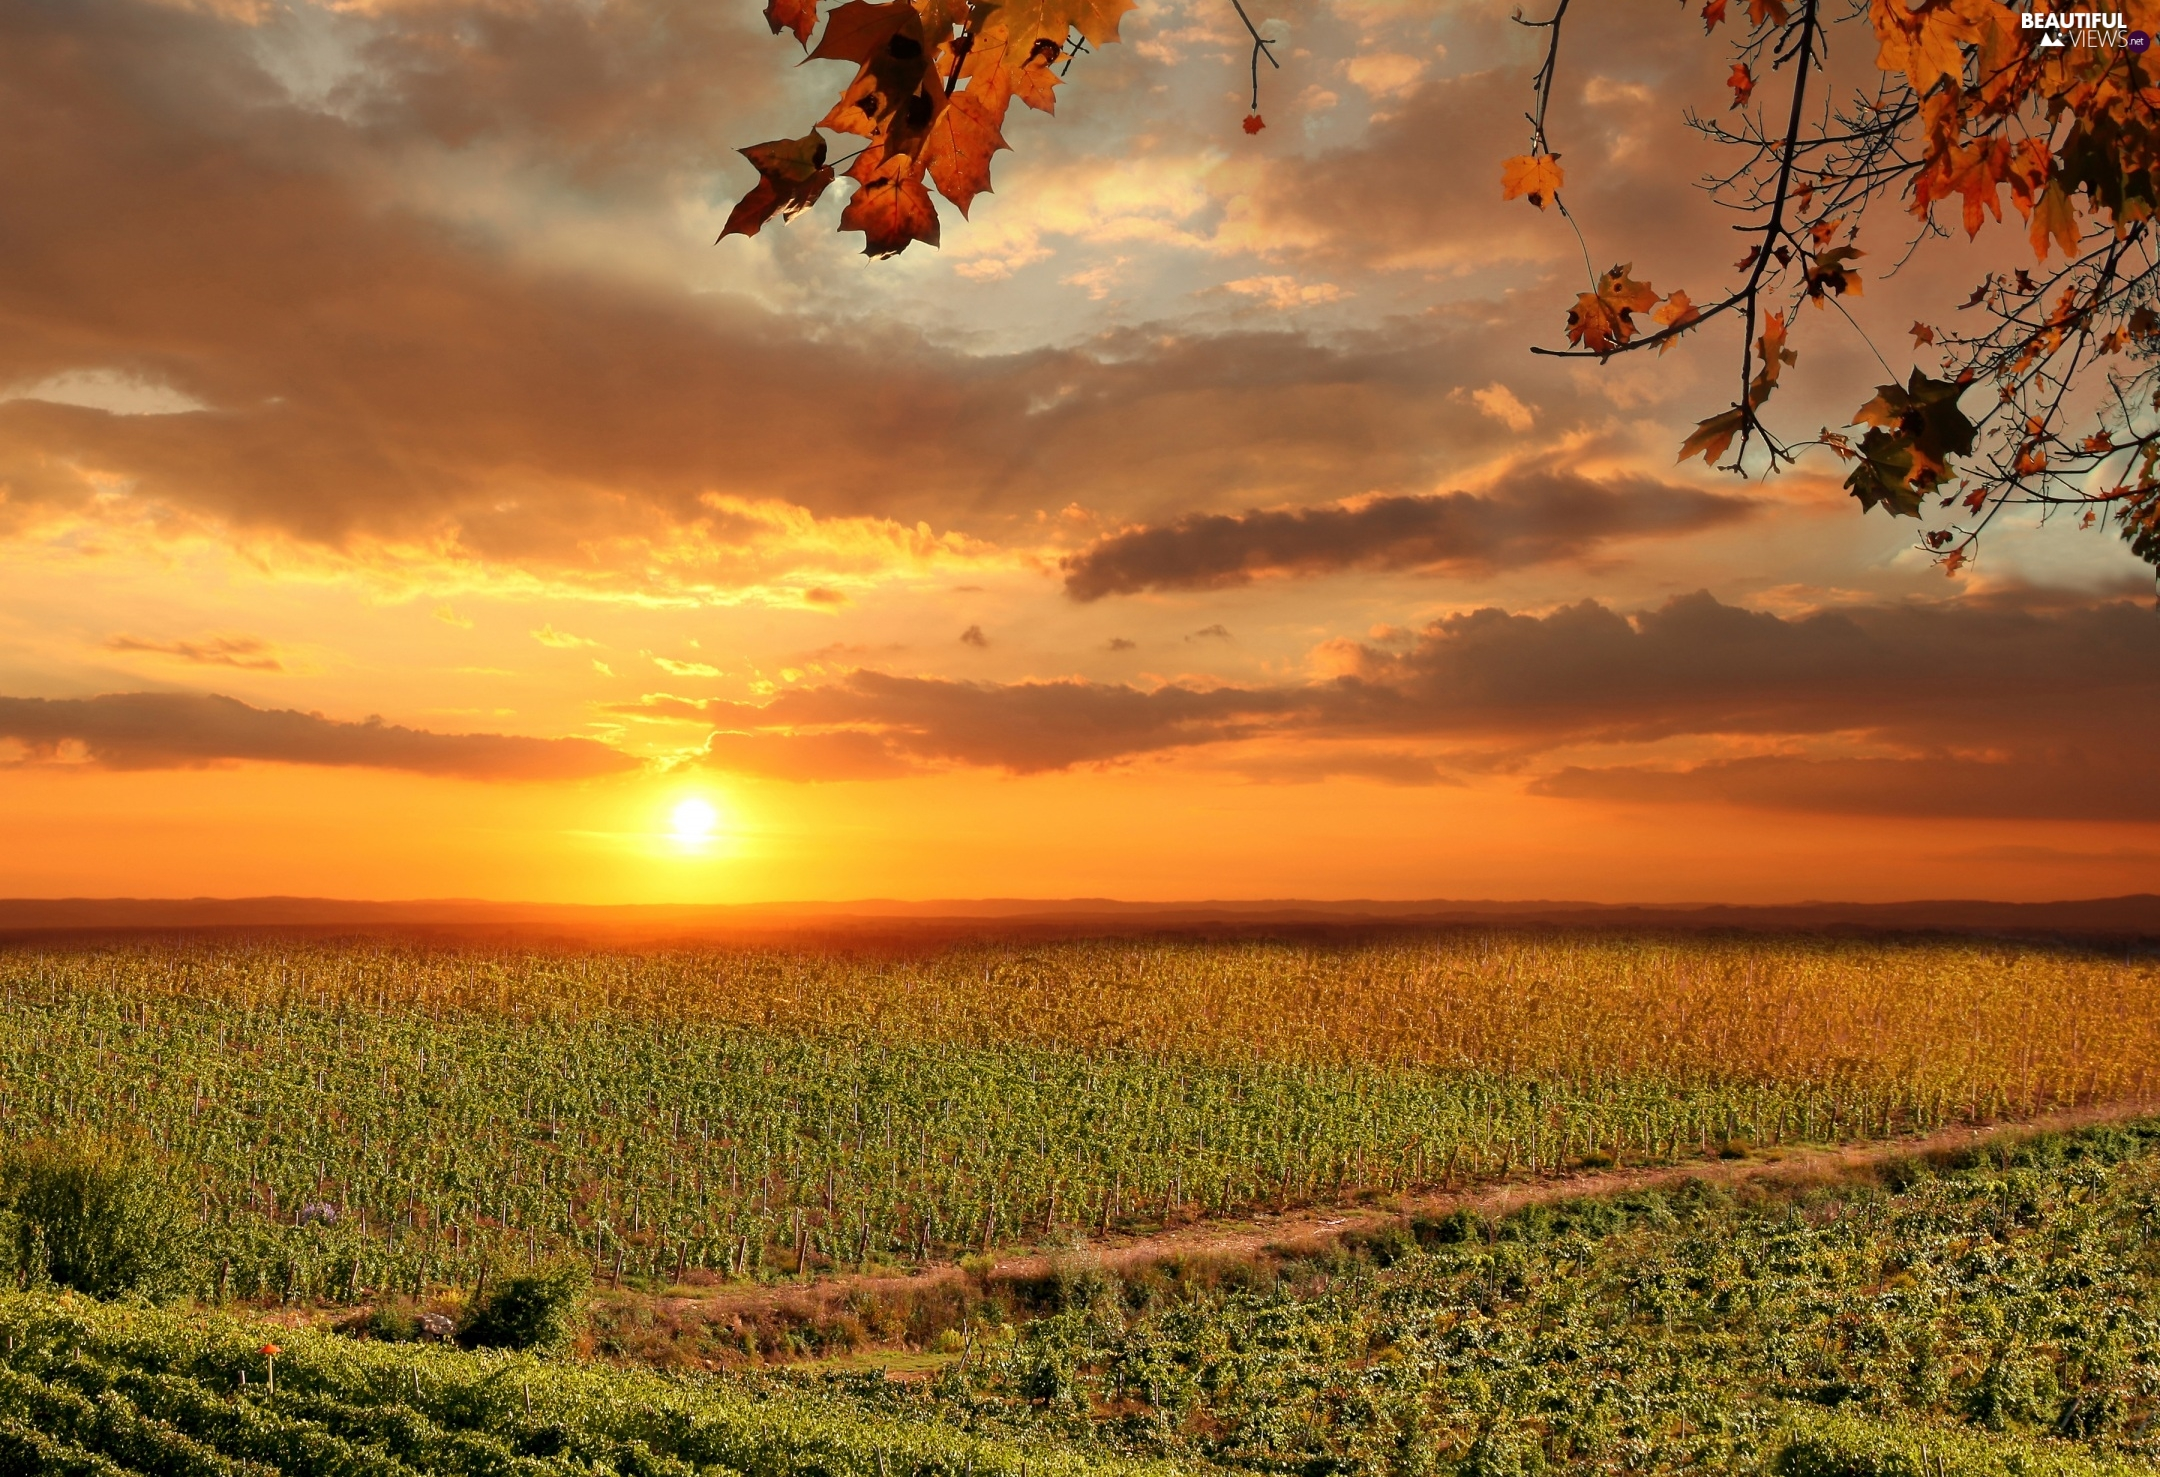 Sunrise, Field, vineyards, Italy, clouds, Tuscany